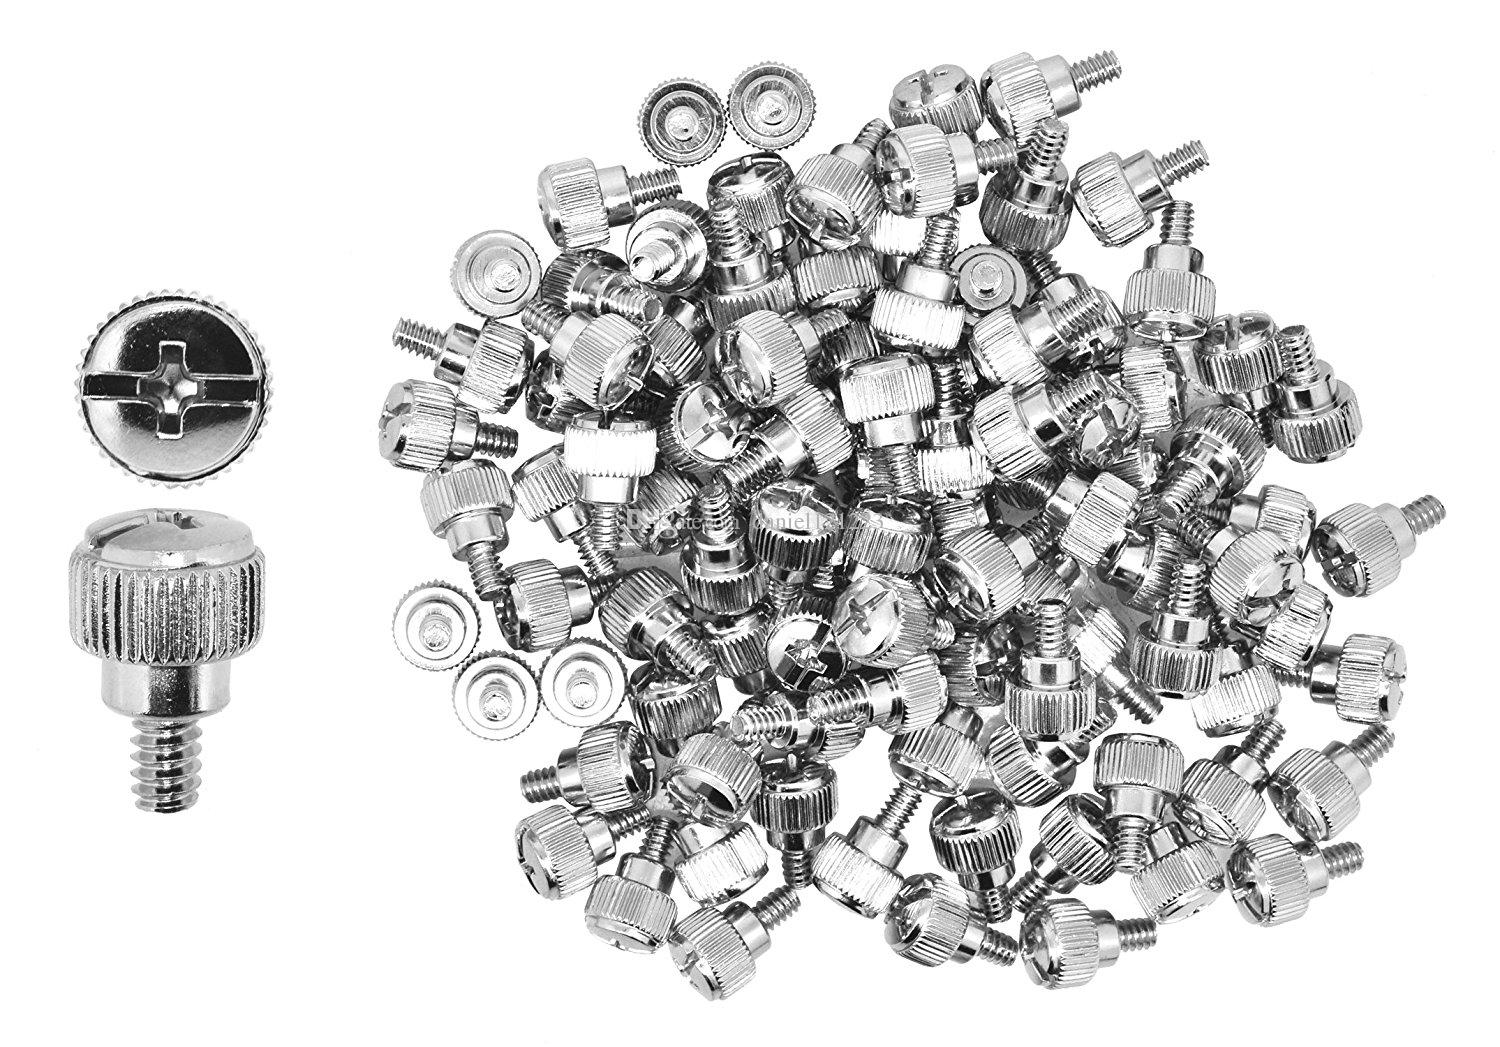 Mudra Crafts Desktop PC Computer Building Case 6-32 Repair Mounting Thumb Screw Assortment Kit, Silver Chrome